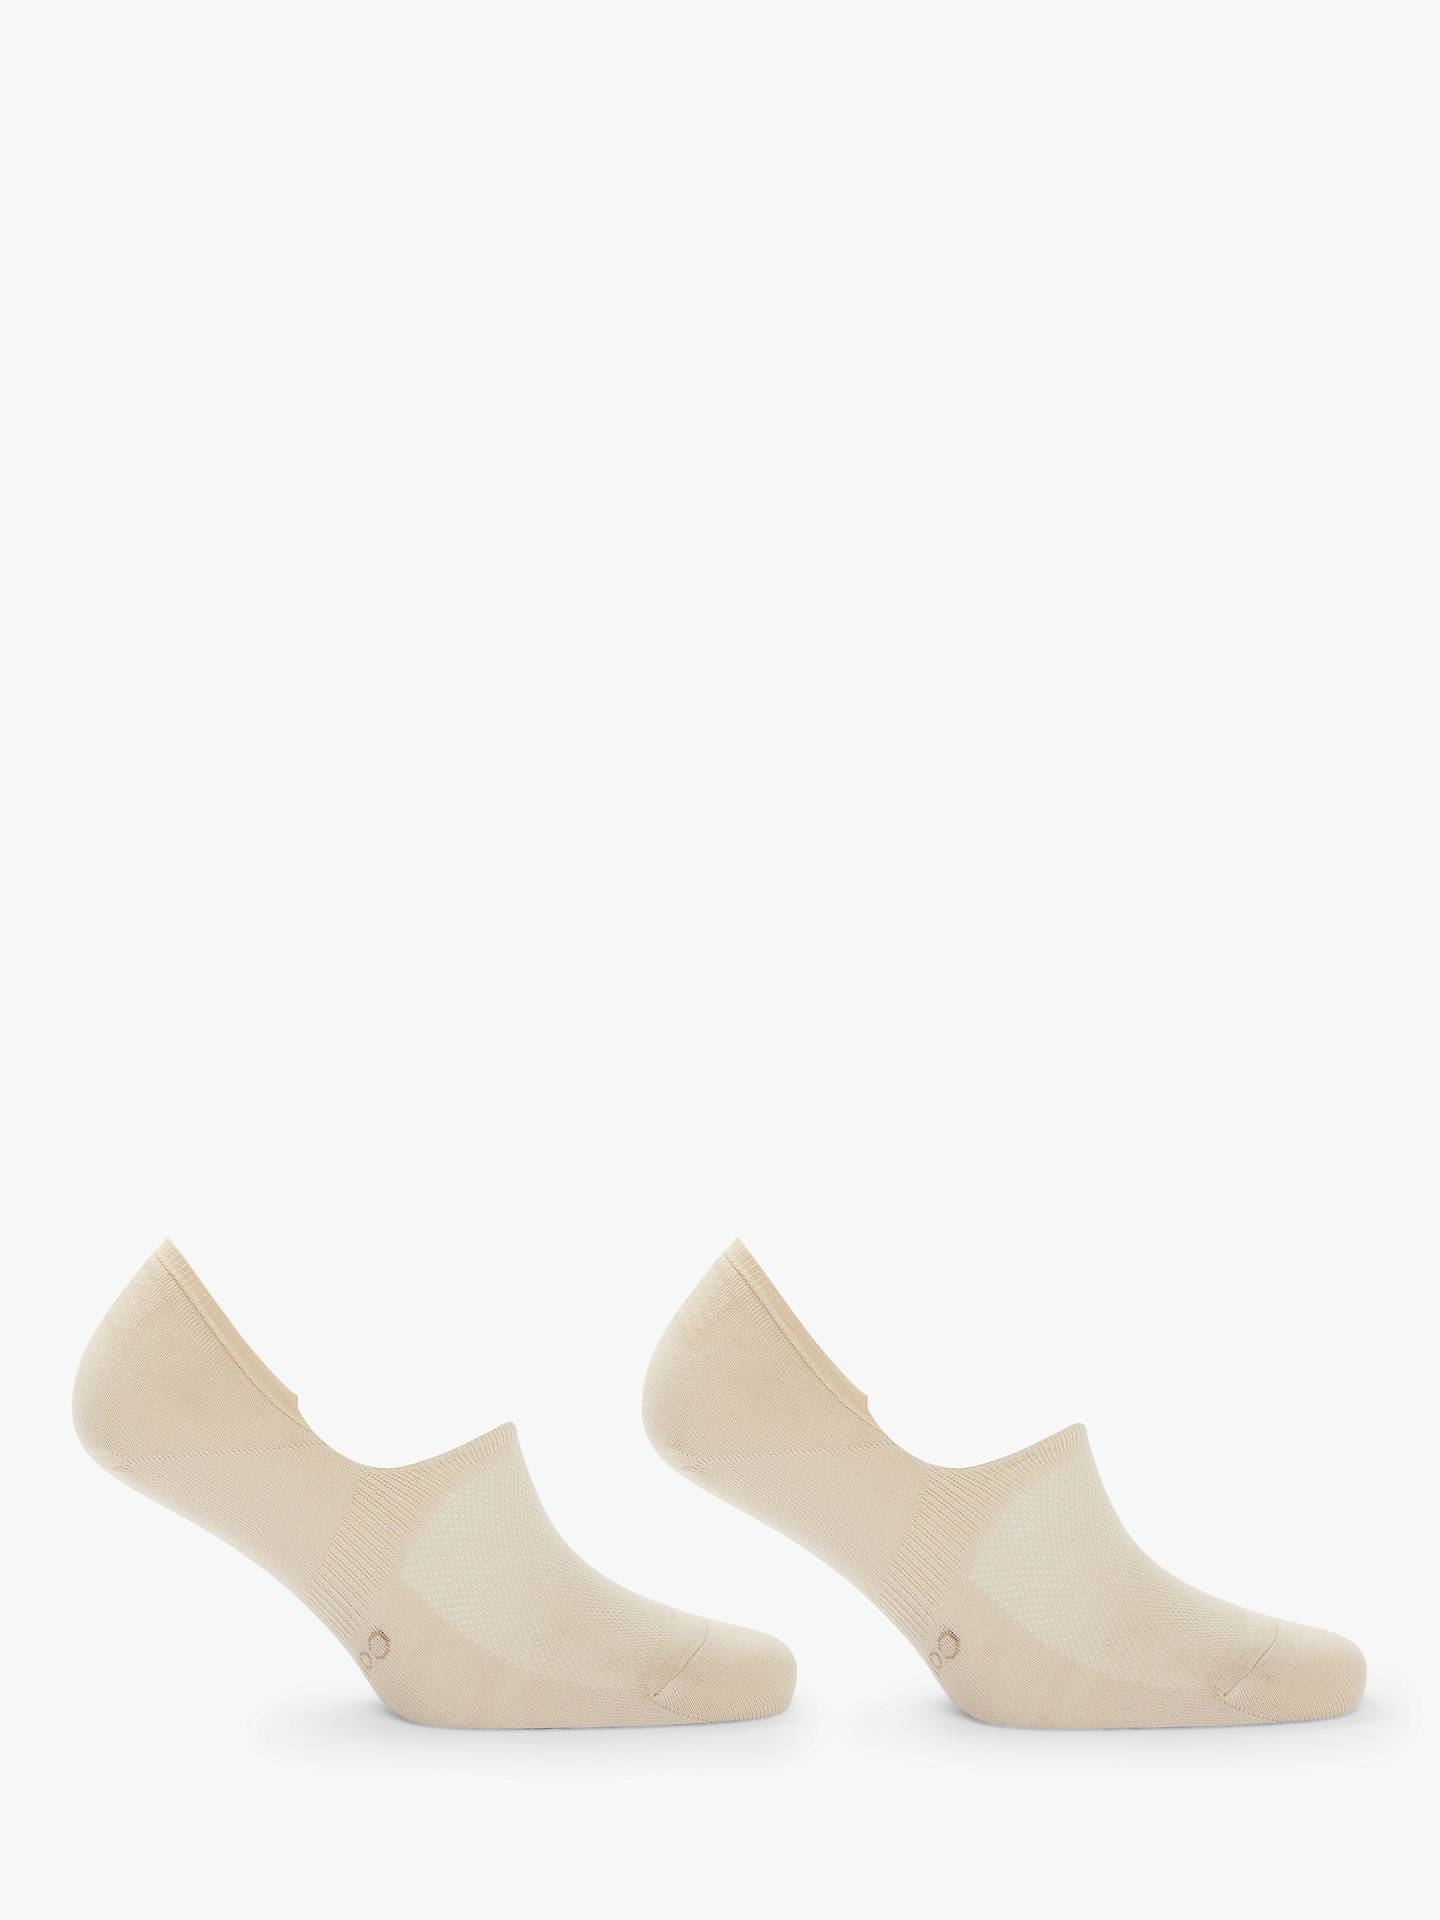 BuyCalvin Klein No Show Dress Socks, Pack of 2, One Size, Beige Online at johnlewis.com